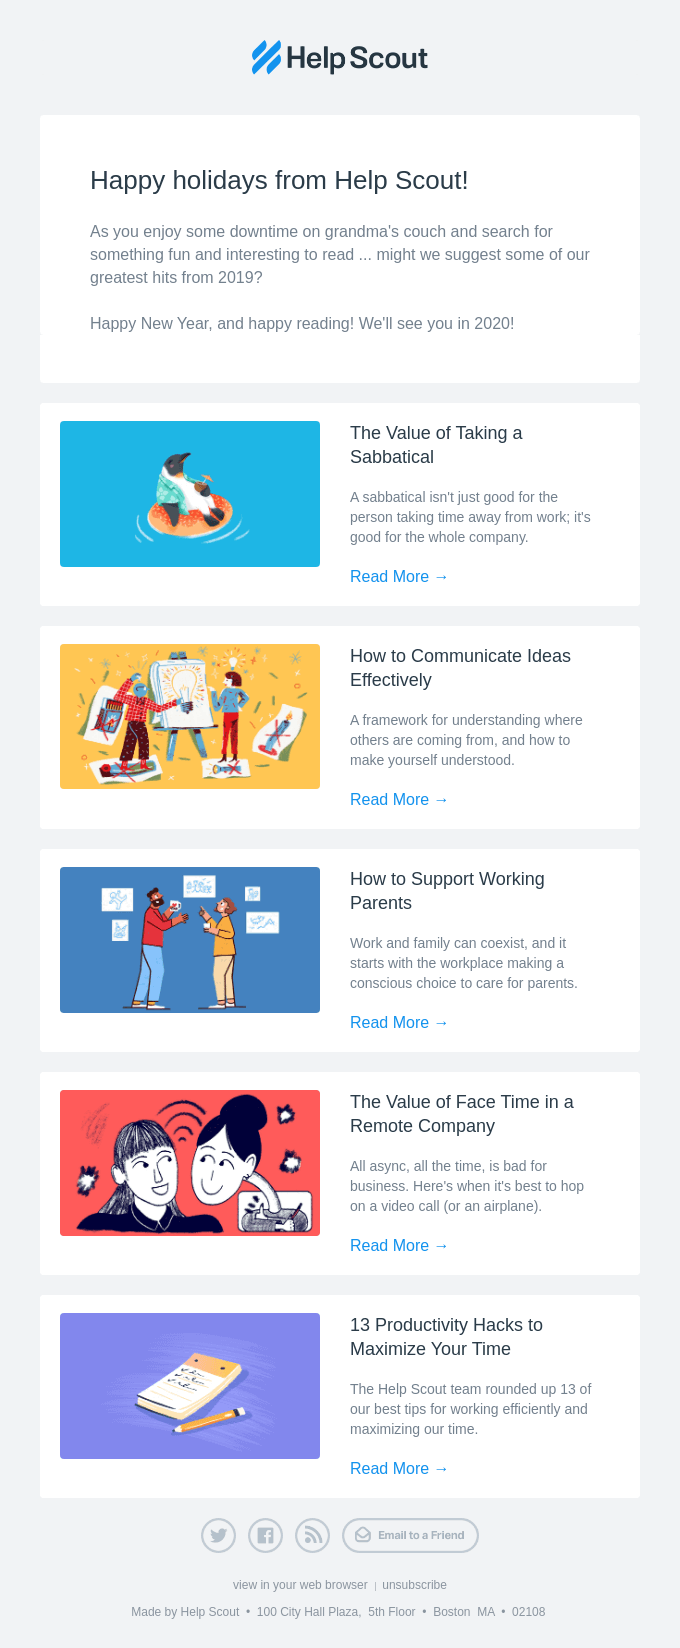 HelpScout's New Year's email example.